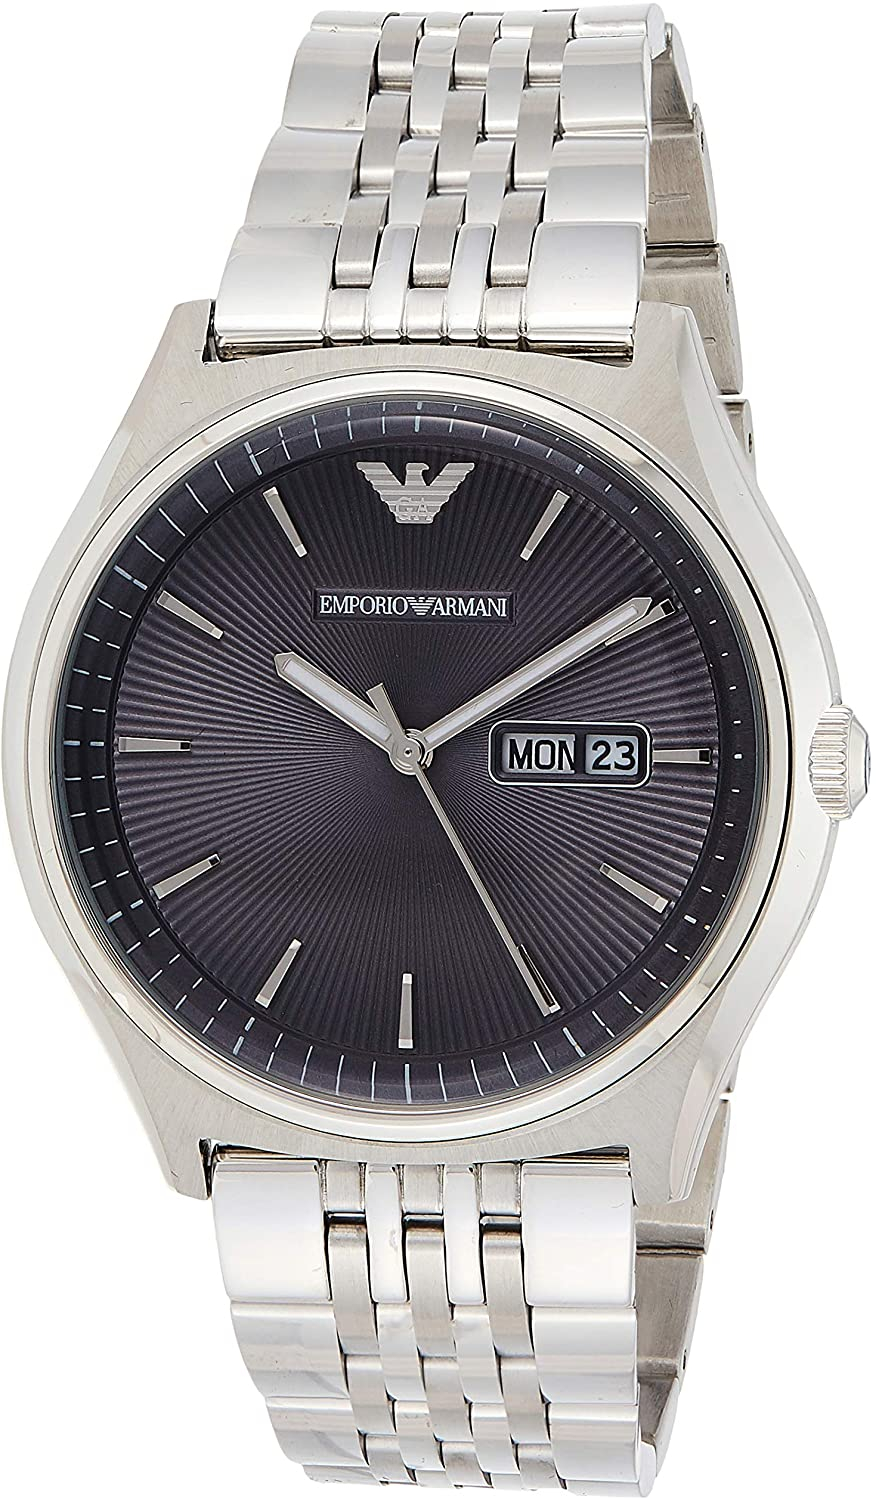 OROLOGIO EMPORIO ARMANI WATCHES